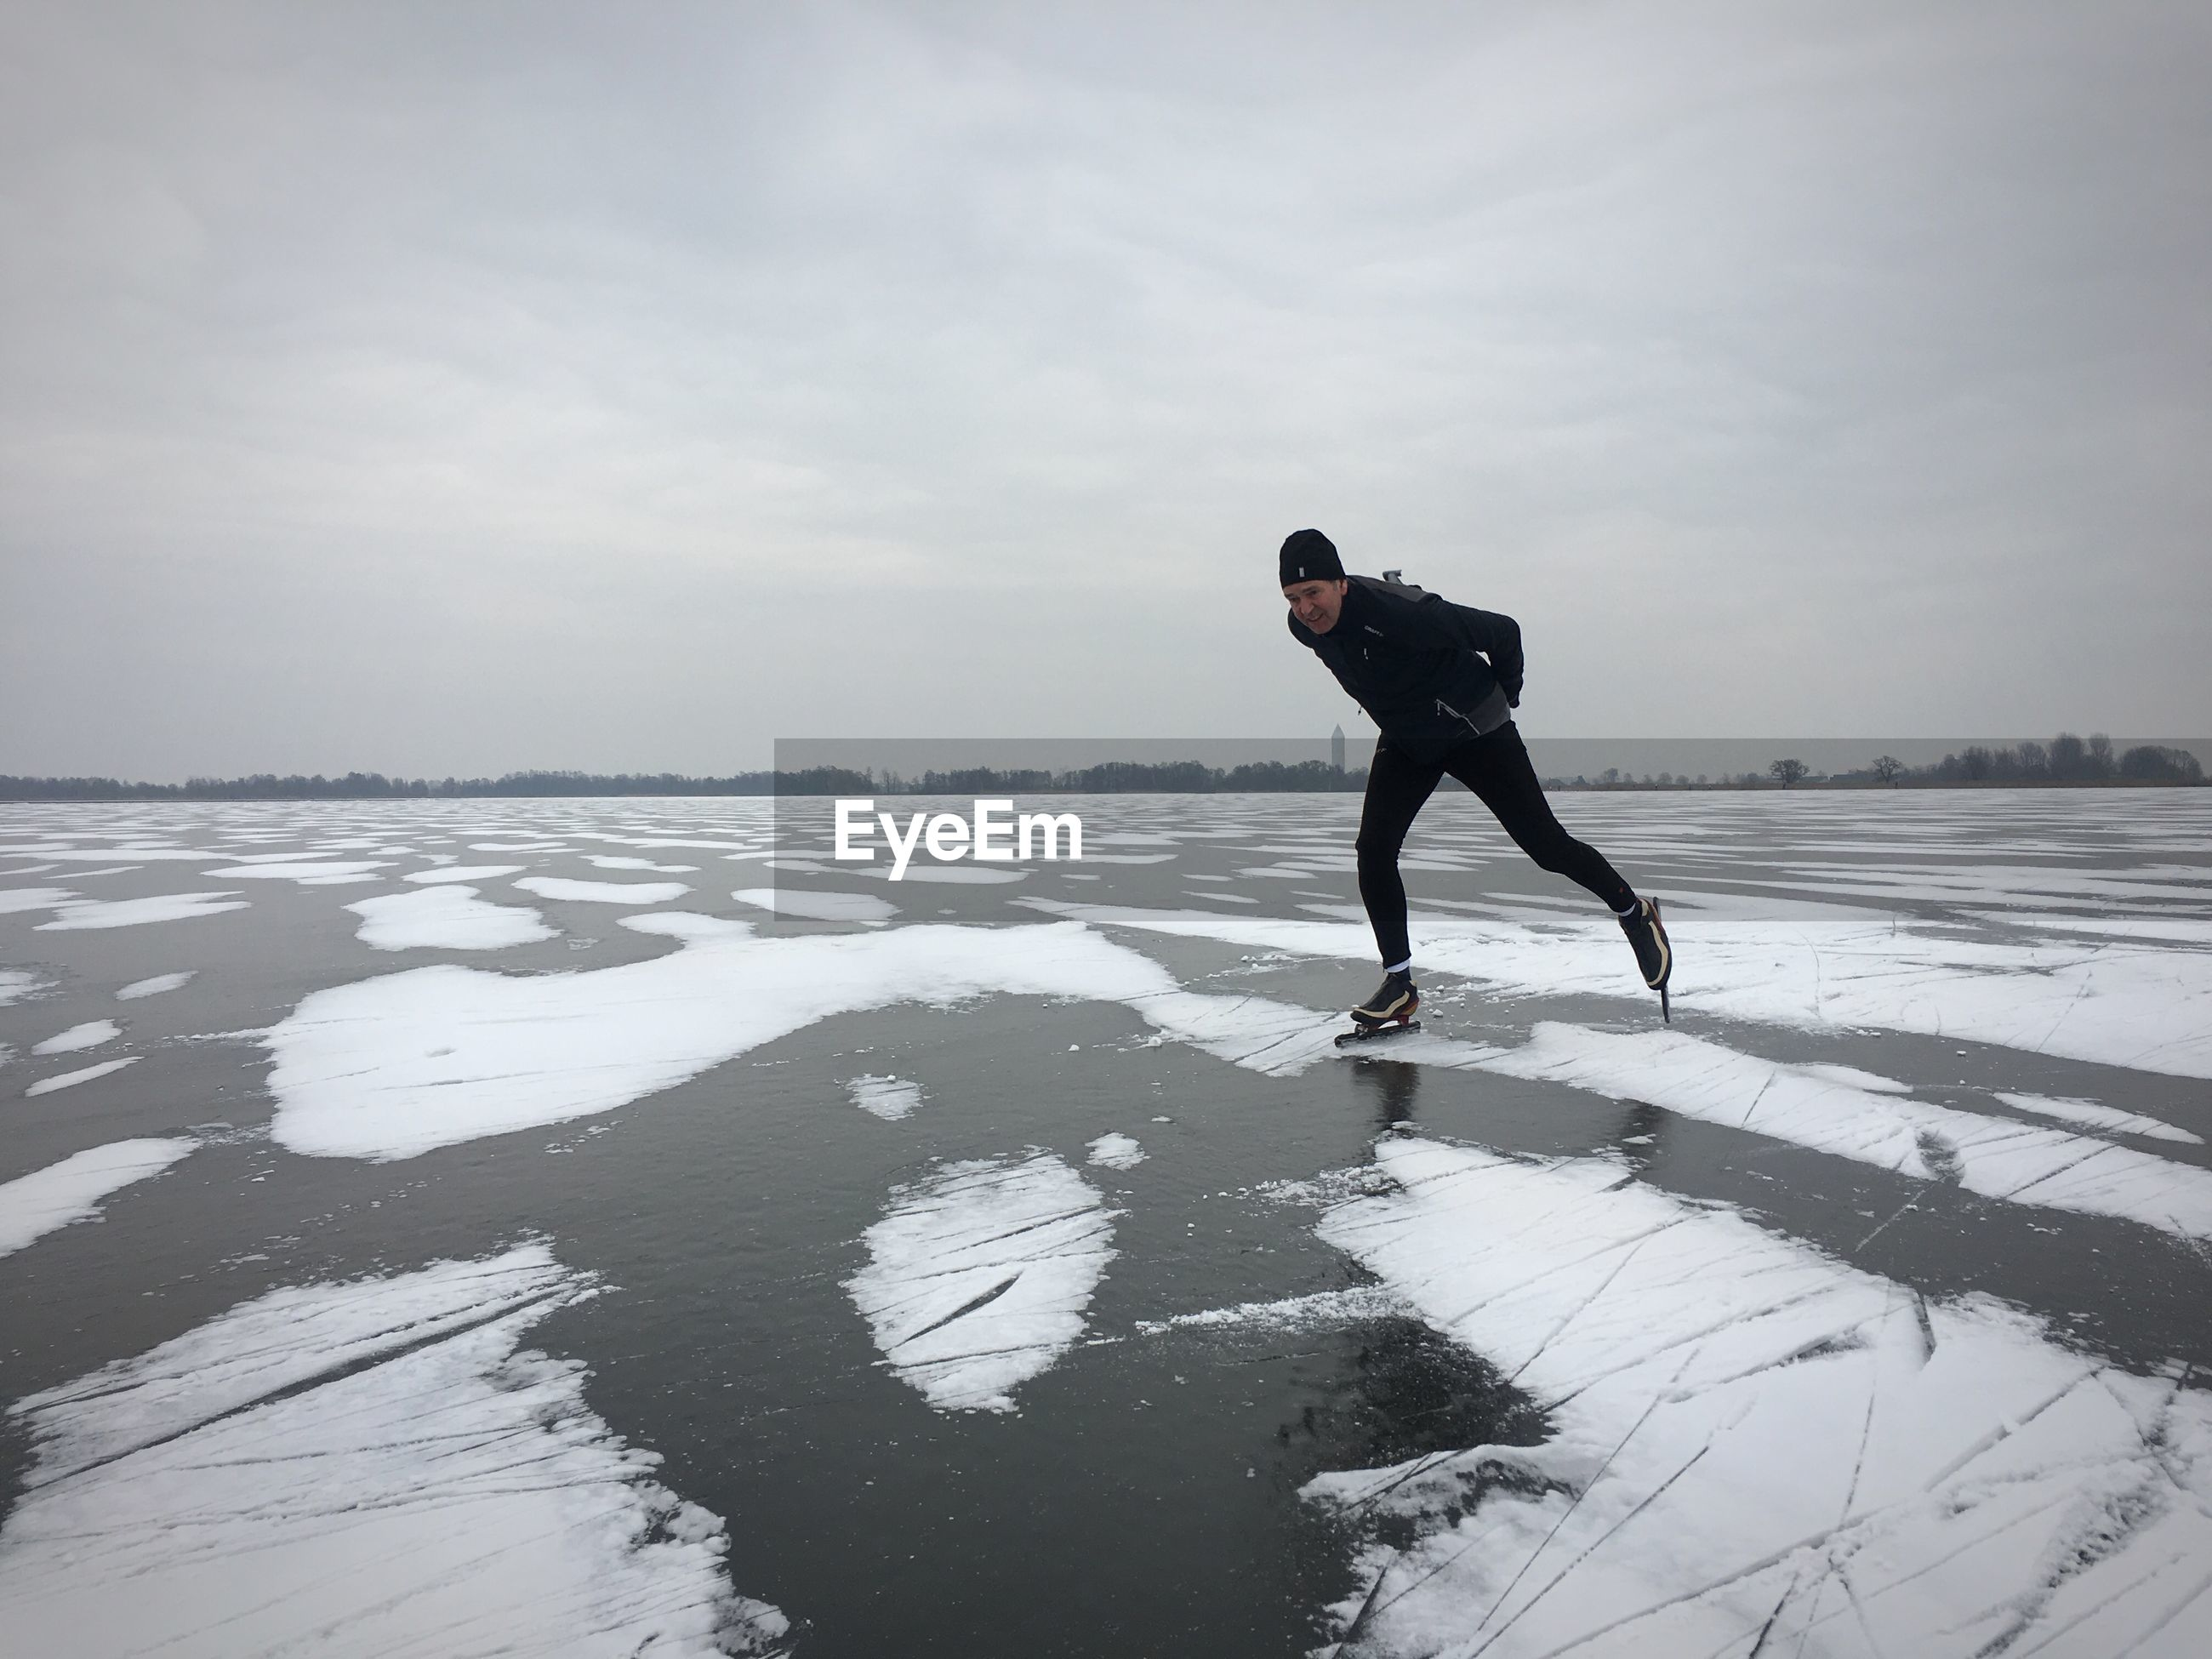 Man skating on ice rink against sky